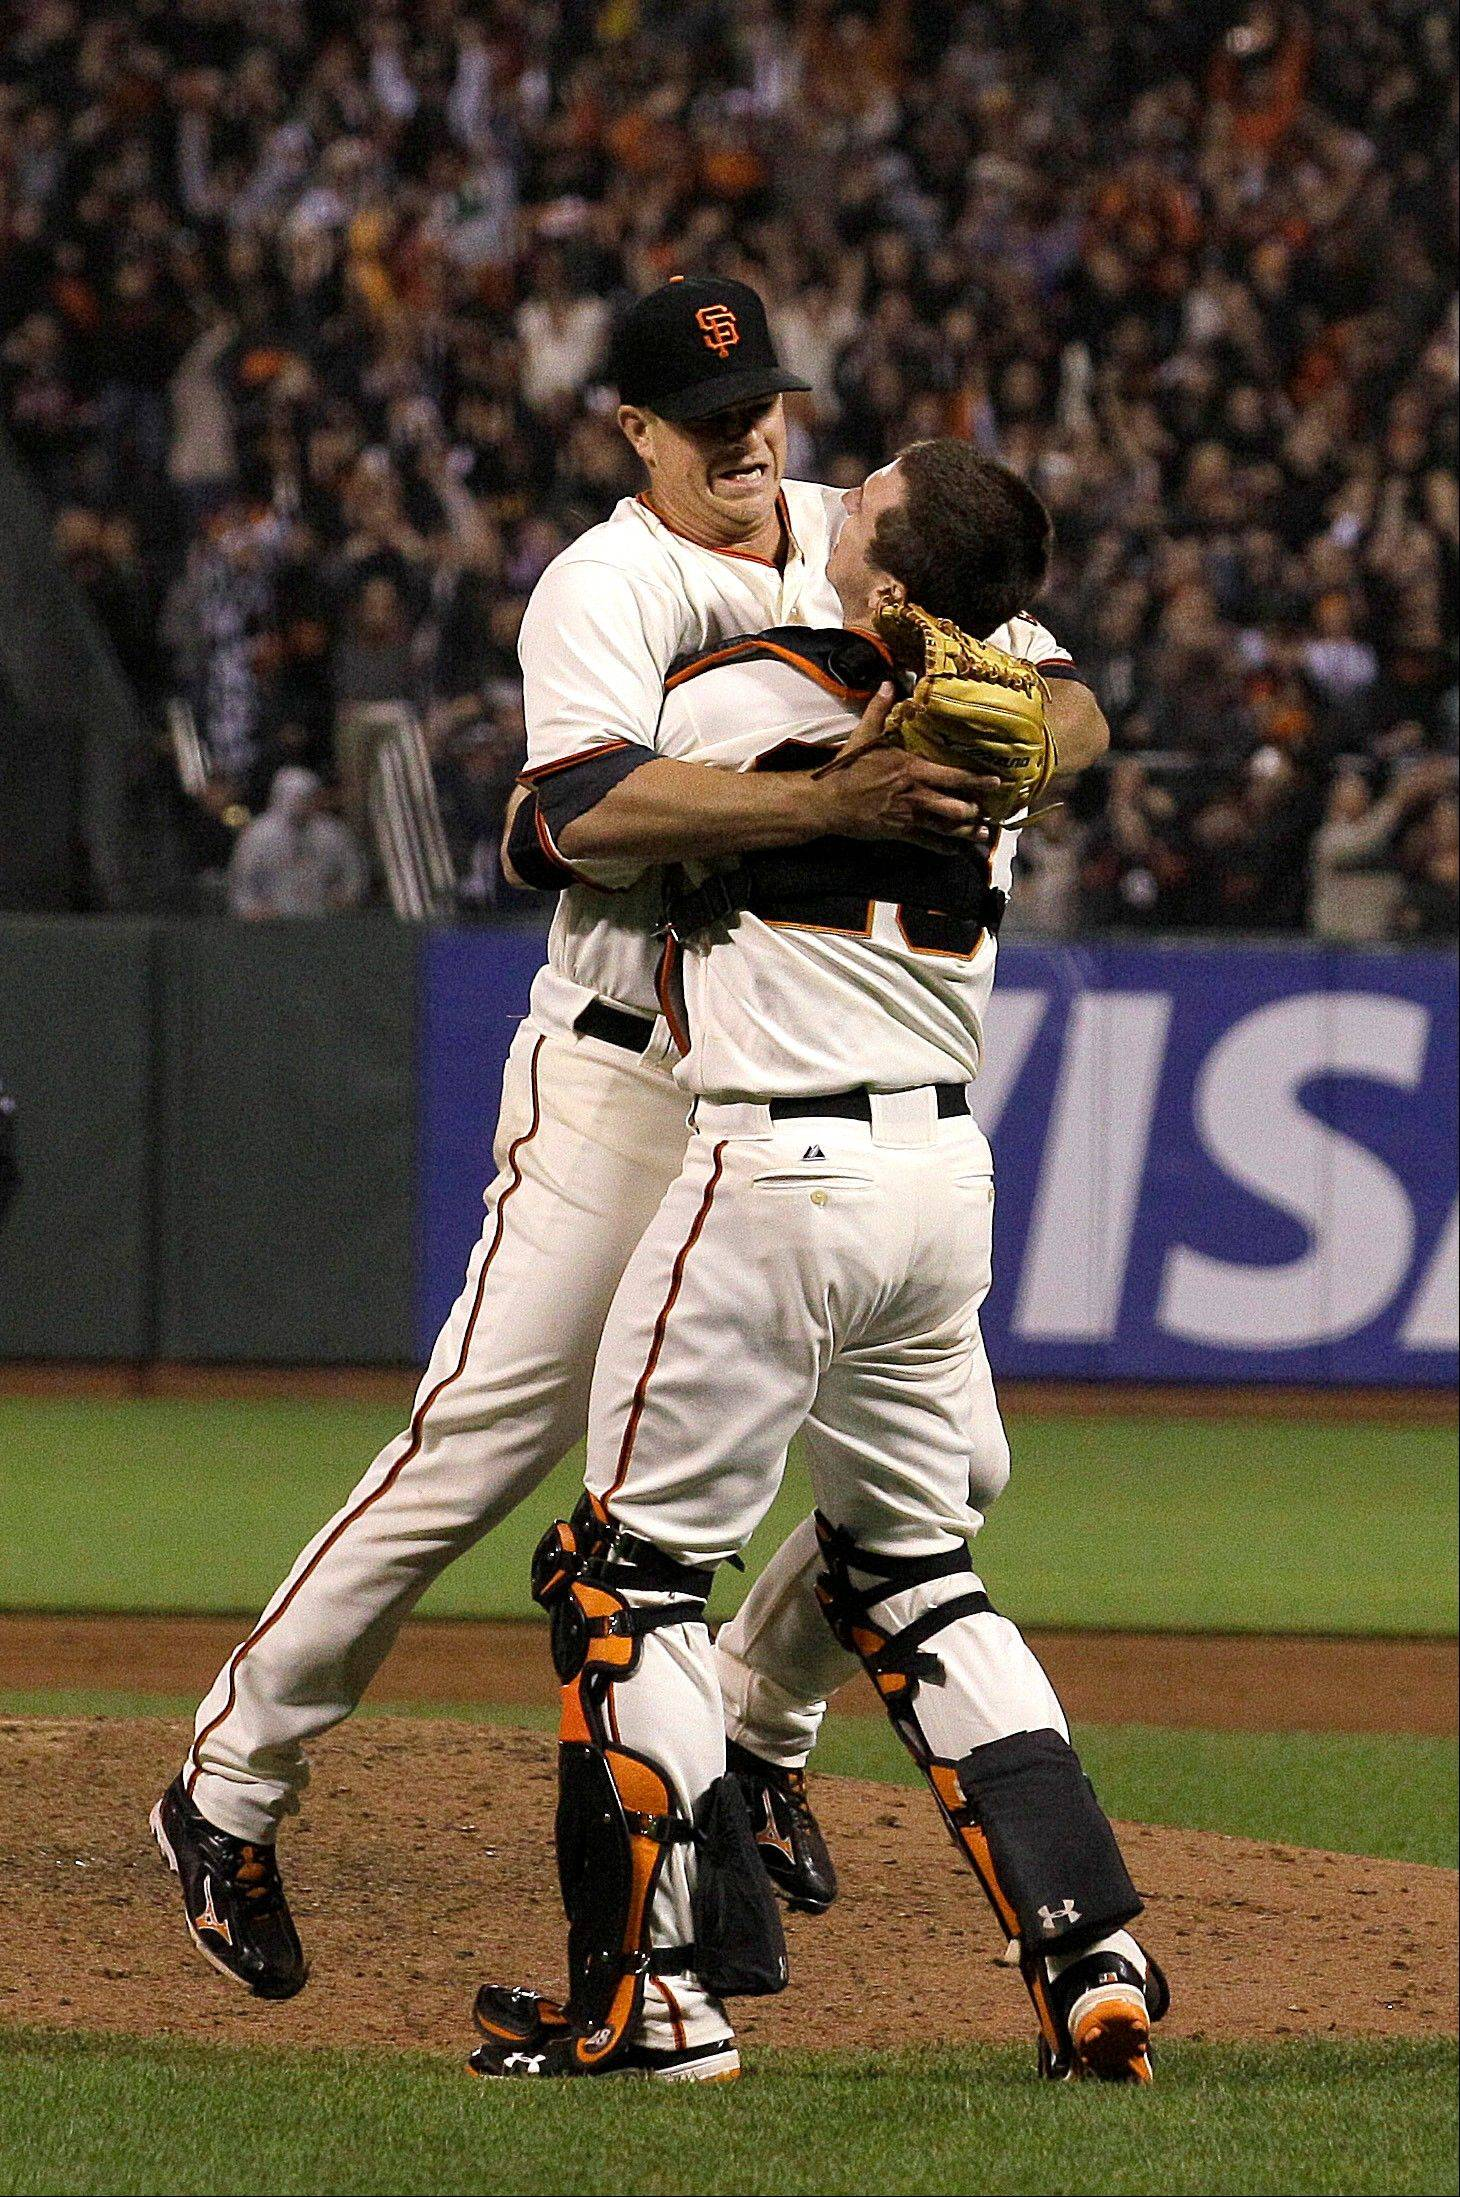 San Francisco Giants pitcher Matt Cain, left, celebrates Wednesday with catcher Buster Posey after the final out against the Houston Astros in San Francisco.